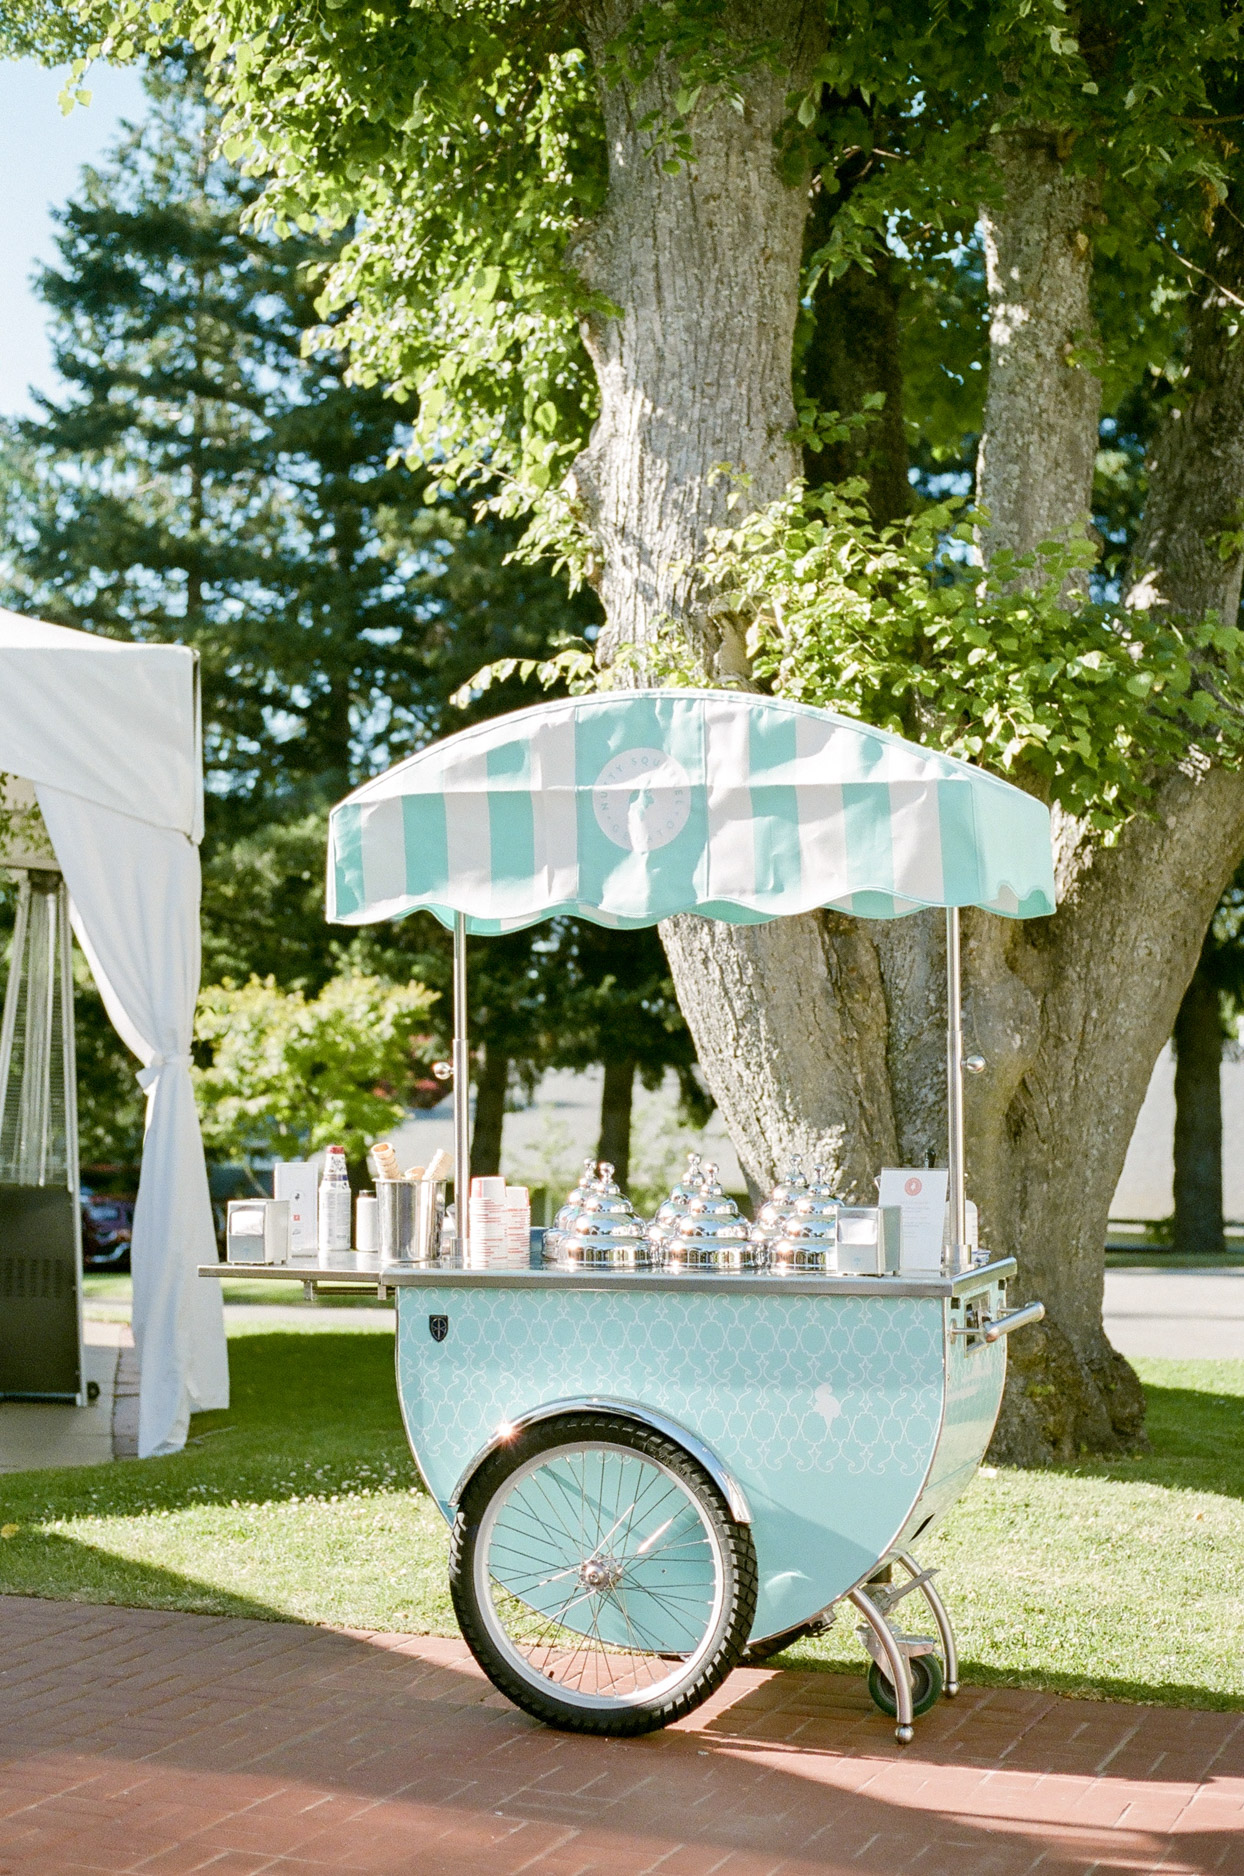 teal and white ice cream cart